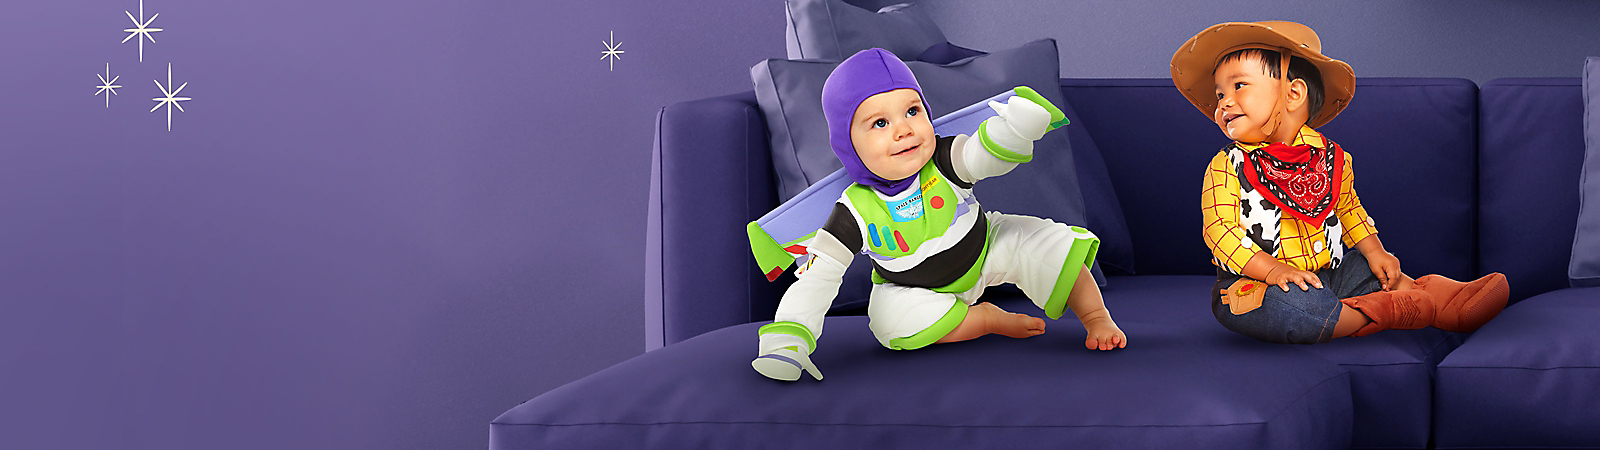 Background image of Baby Halloween Costumes